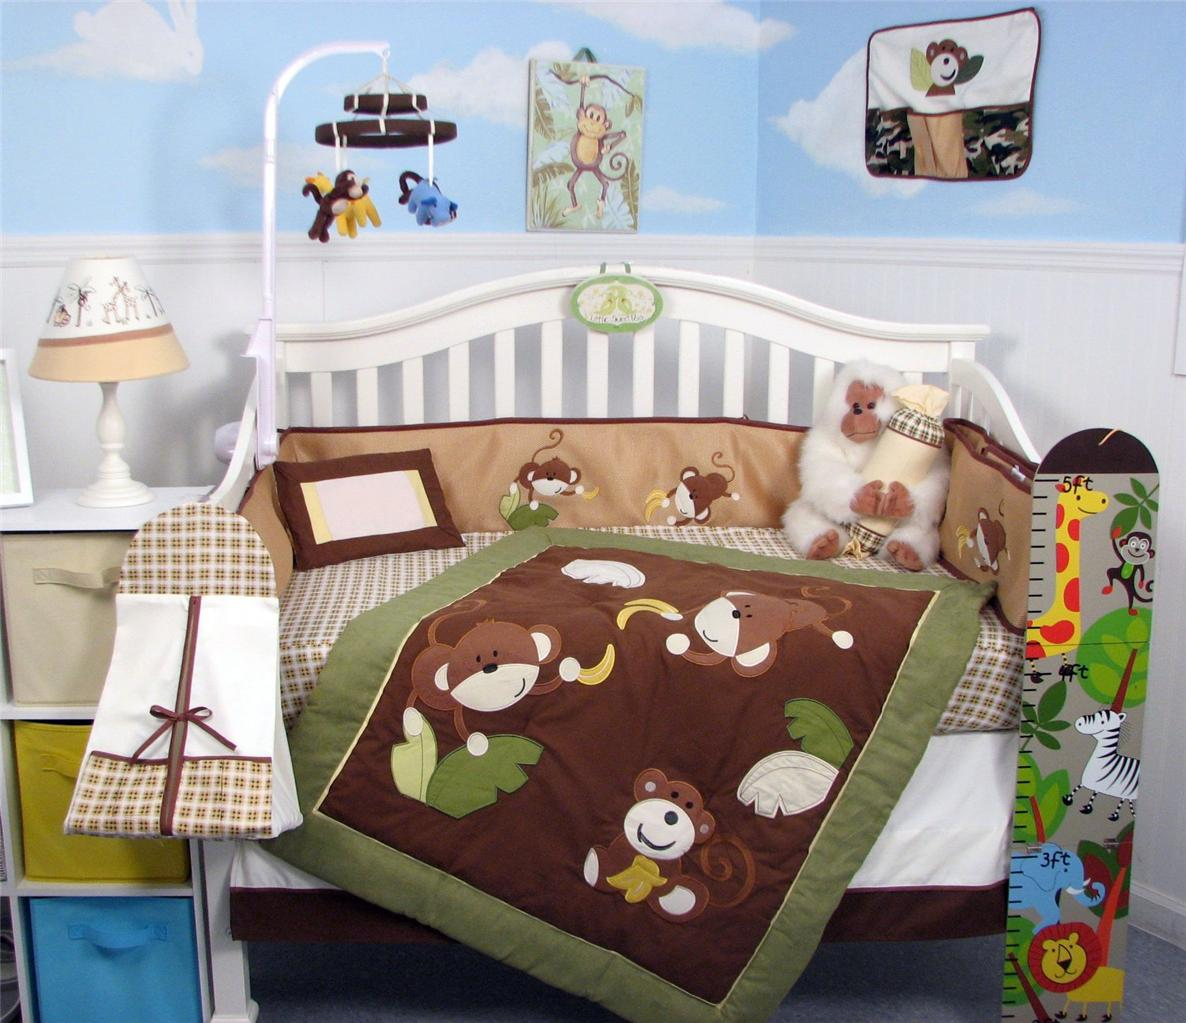 Soho Designs SoHo Monkey Business Baby Crib Nursery Bedding Set 13 pcs included Diaper Bag with Changing Pad & Bottle Case at Sears.com